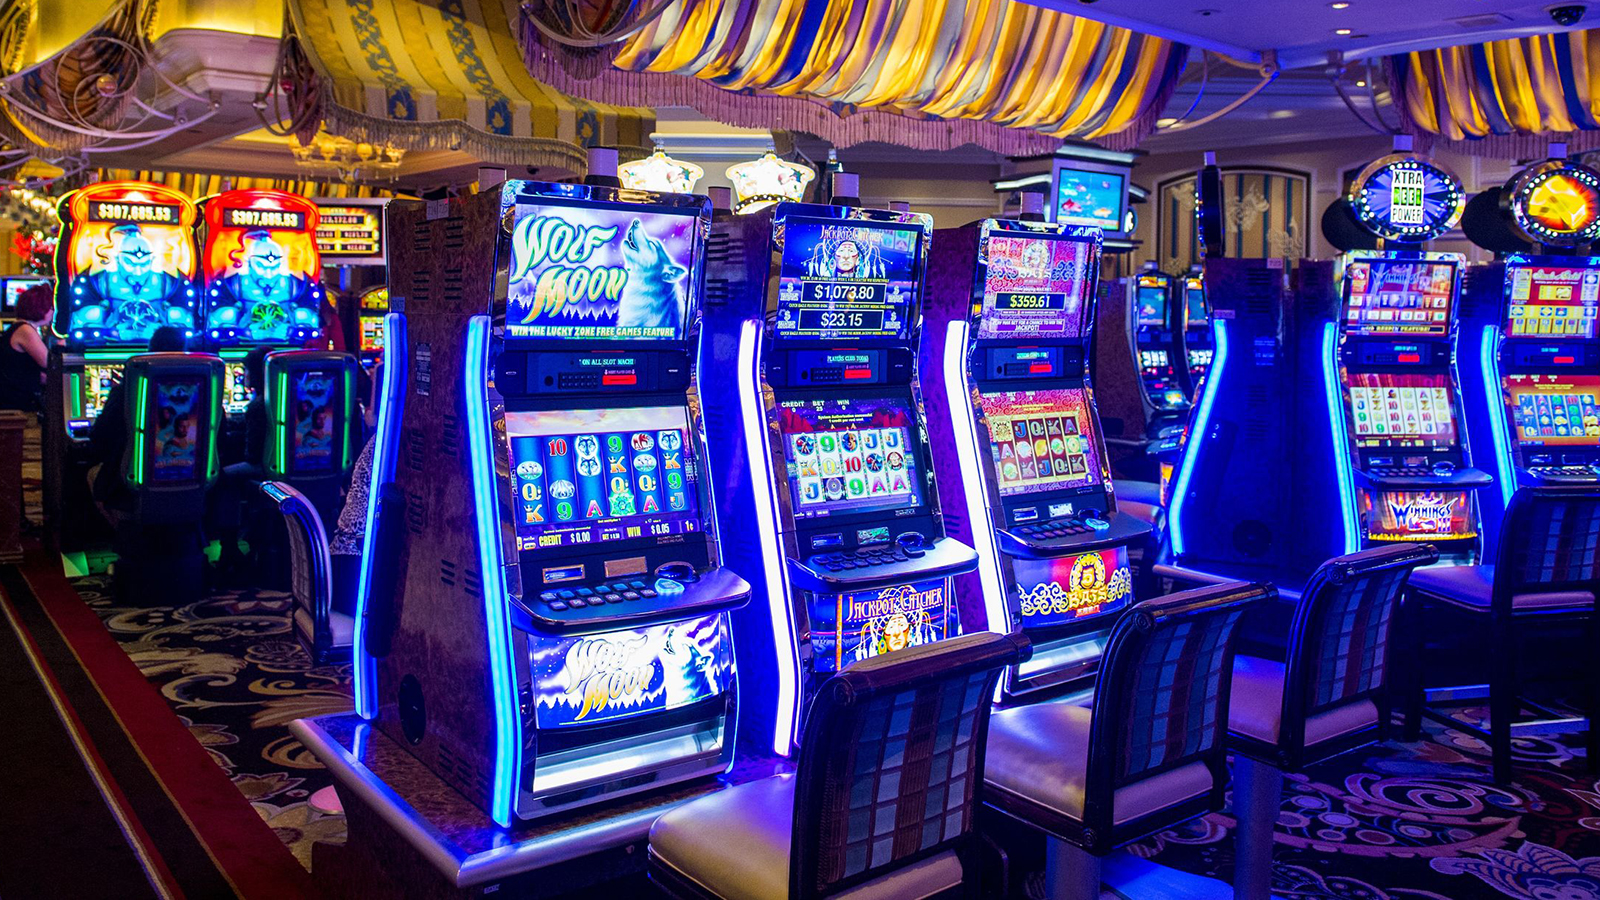 Slot Machine Management: What We're Missing in Our Metrics - Raving